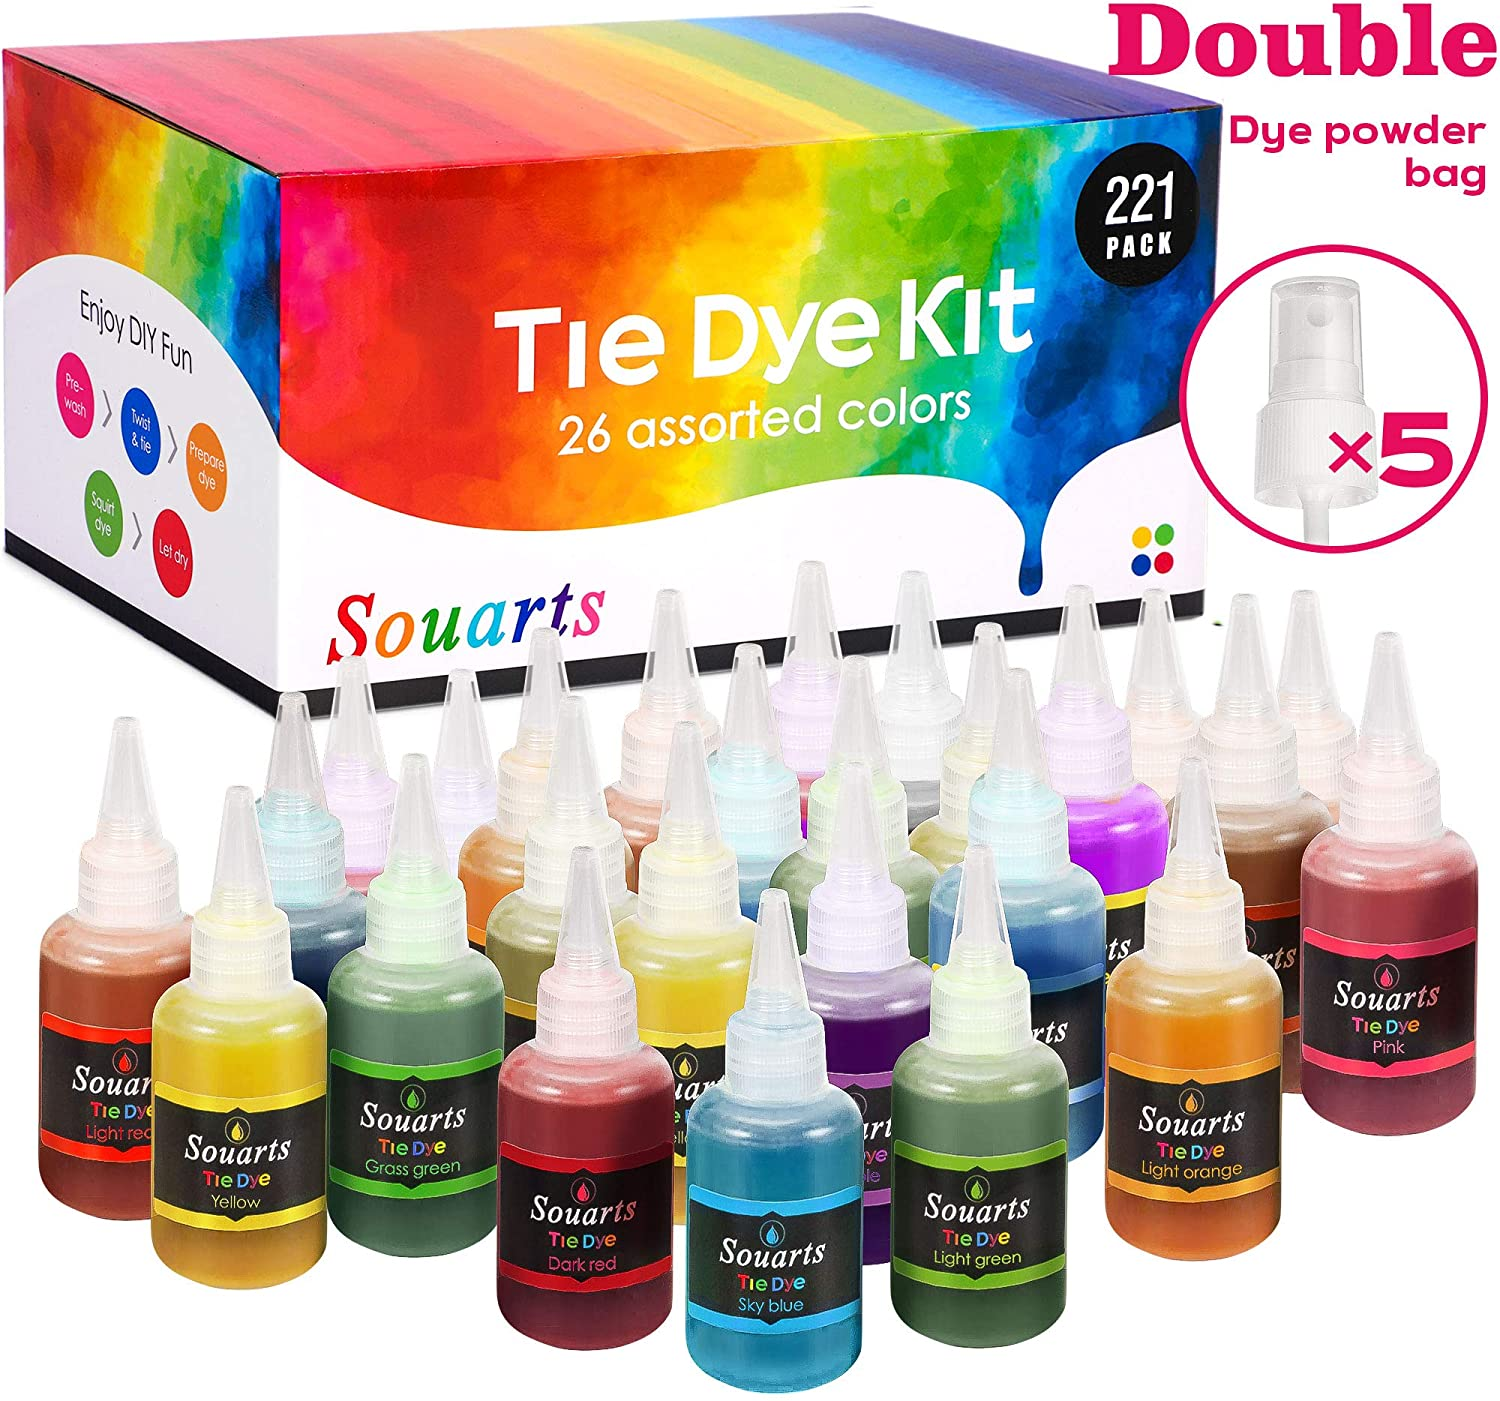 DoreenBow Tulip Tie Dye,26 Colors Tie Dye Kits for Adults, Kids, DIY Tie Dye Kit with Rubber Bands Gloves and Table Covers for Craft Arts Party Handmade Project